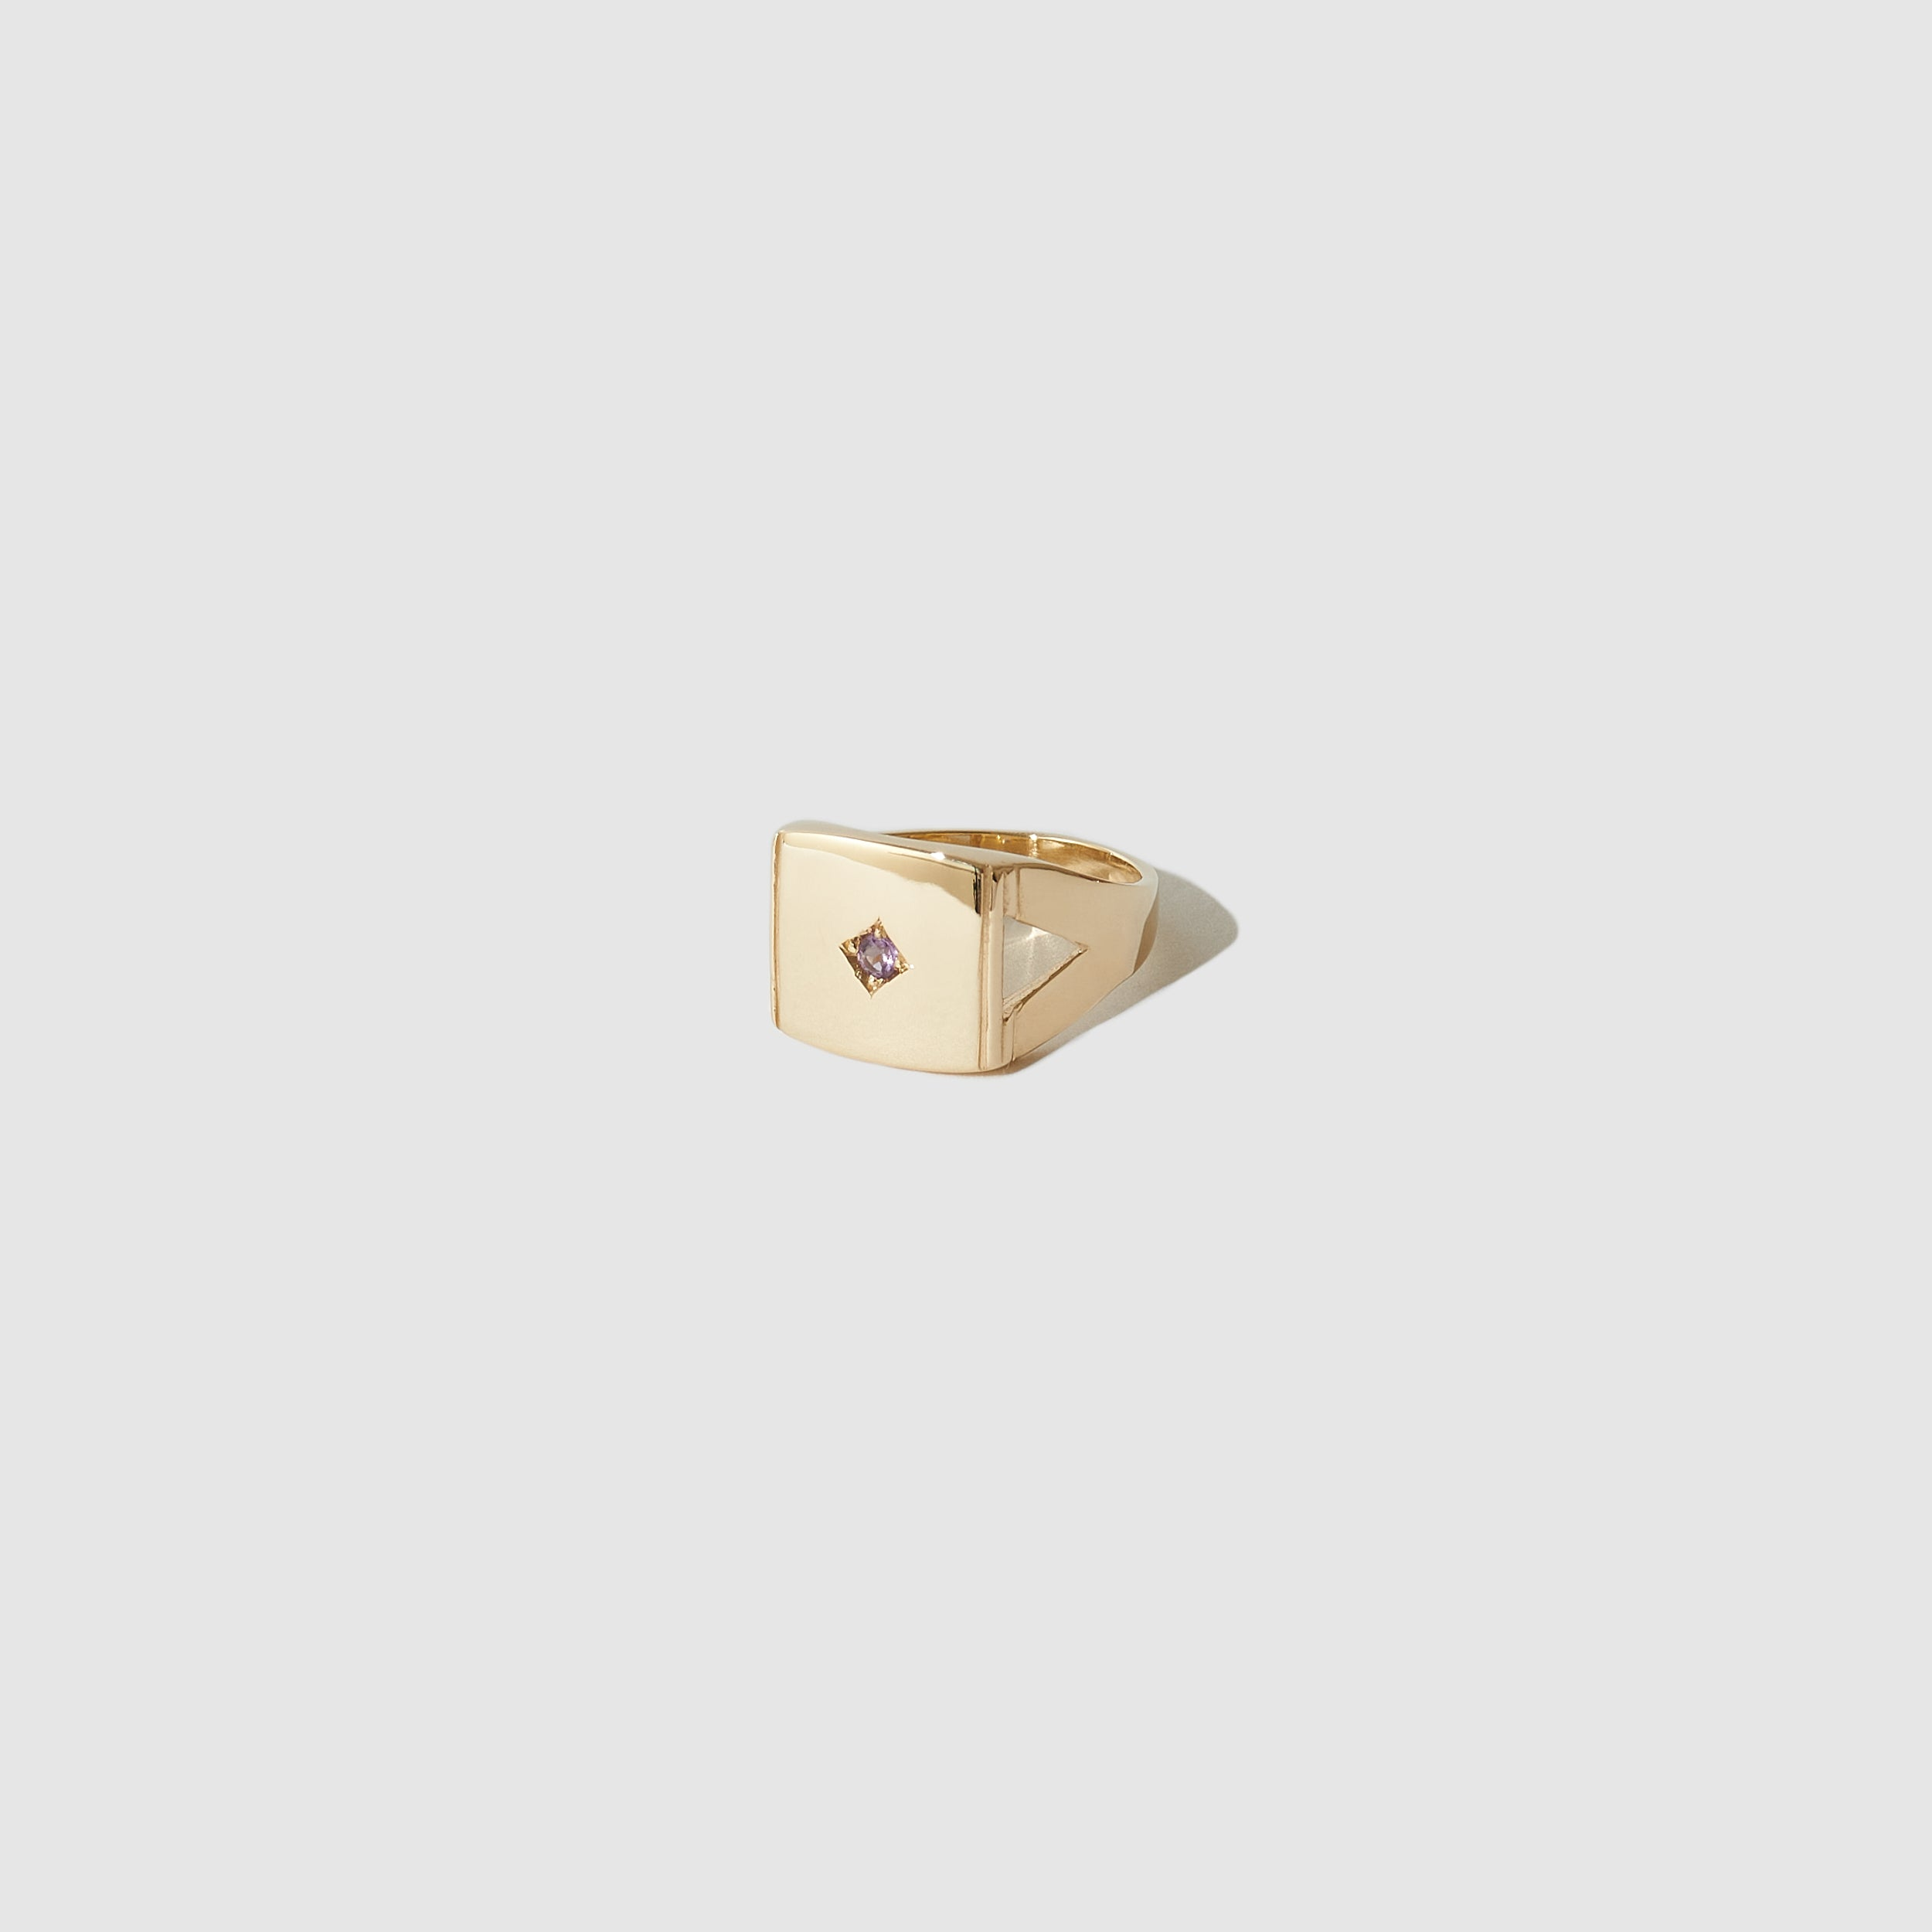 Ornament Signet Ring ~ 9ct yellow gold with light Amethyst